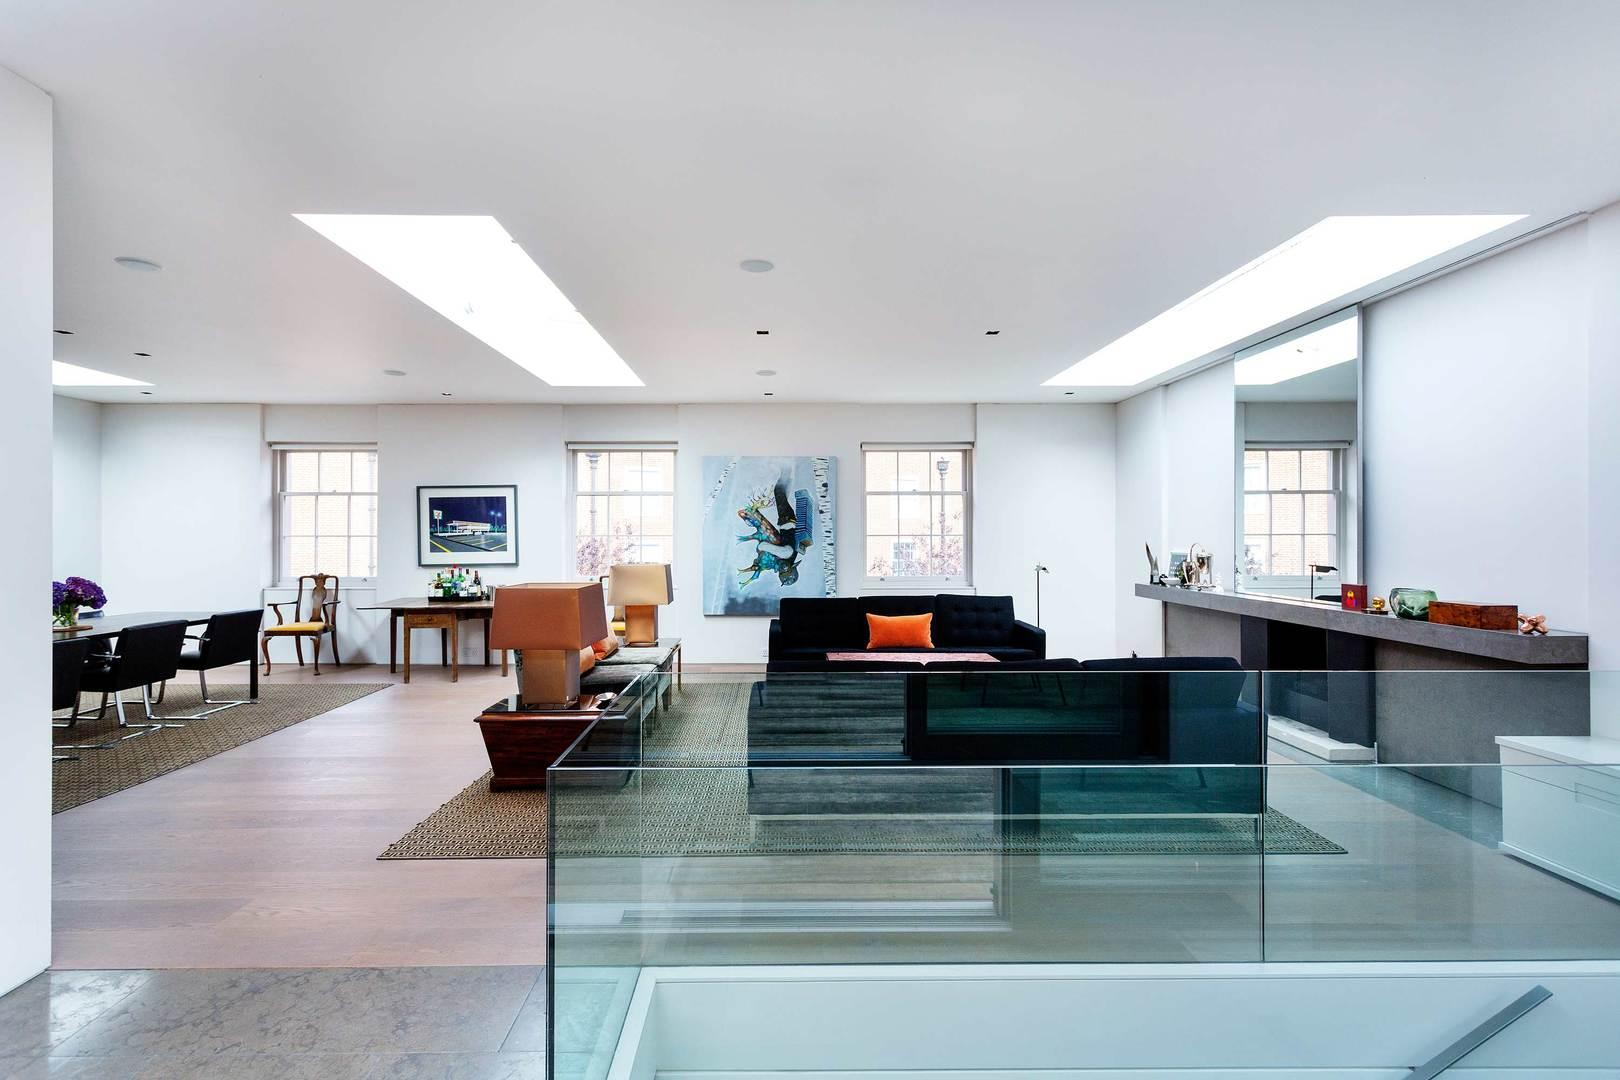 Property Image 1 - Superb Contemporary Marylebone Home with Secluded Terrace